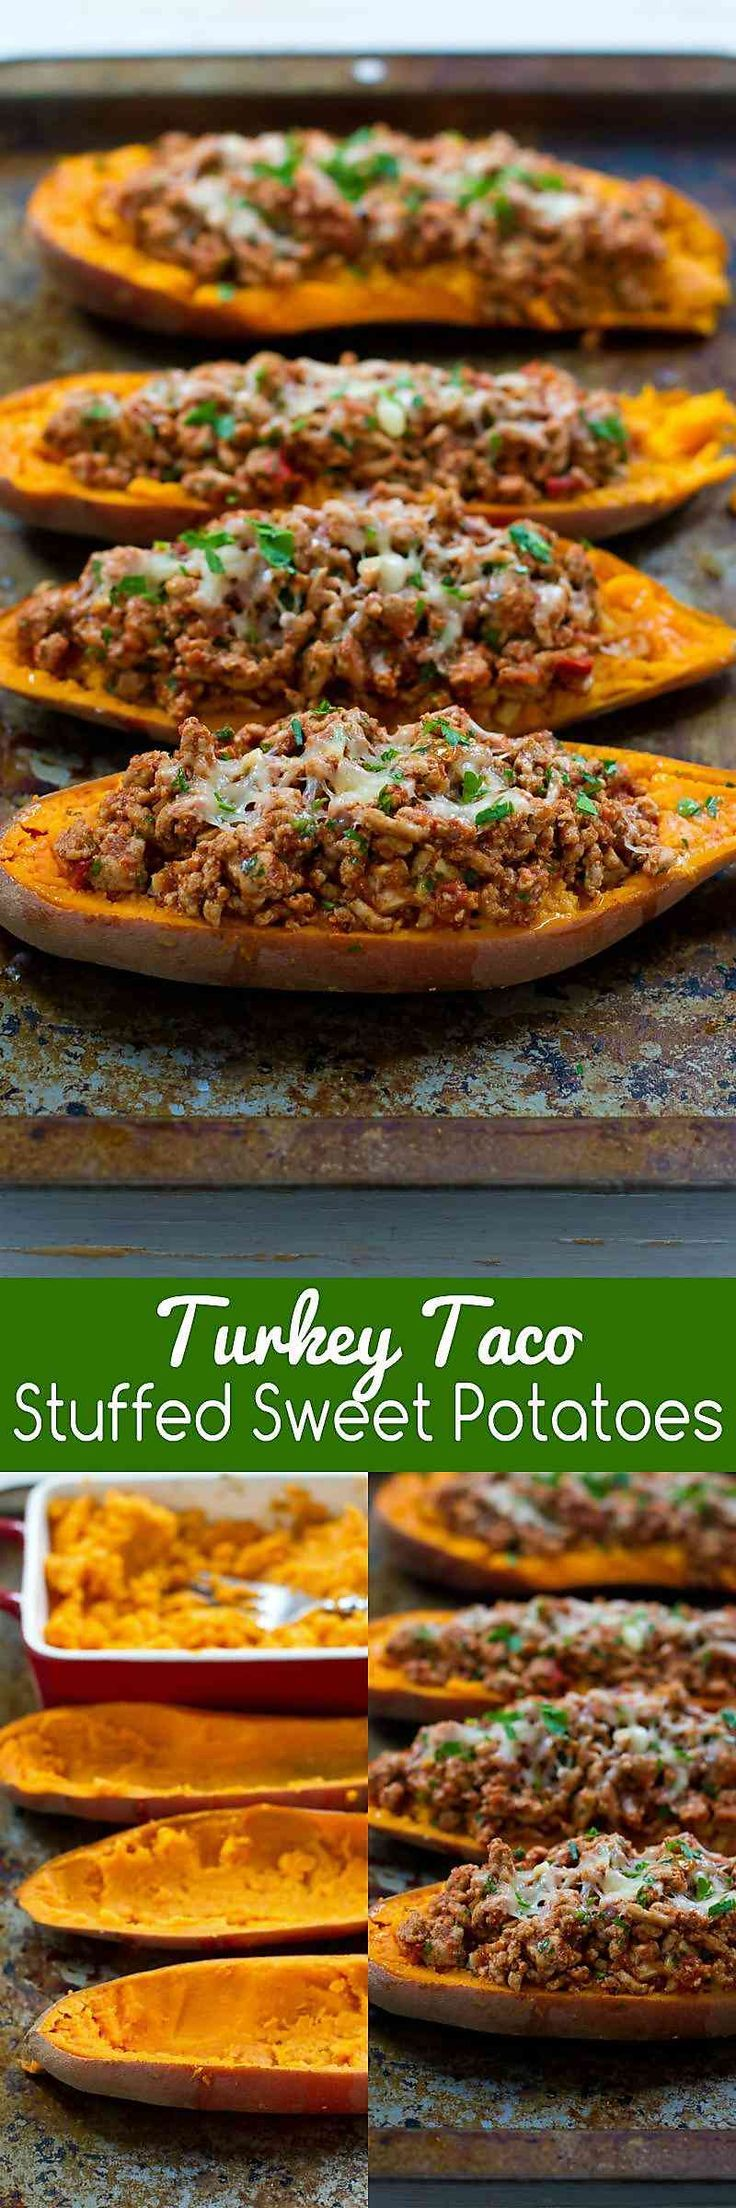 20 minute meal! These Turkey Taco Stuffed Sweet Potatoes are a fantastic option when you need a quick dinner recipe. 234 calories and 6 Weight Watchers SmartPoints